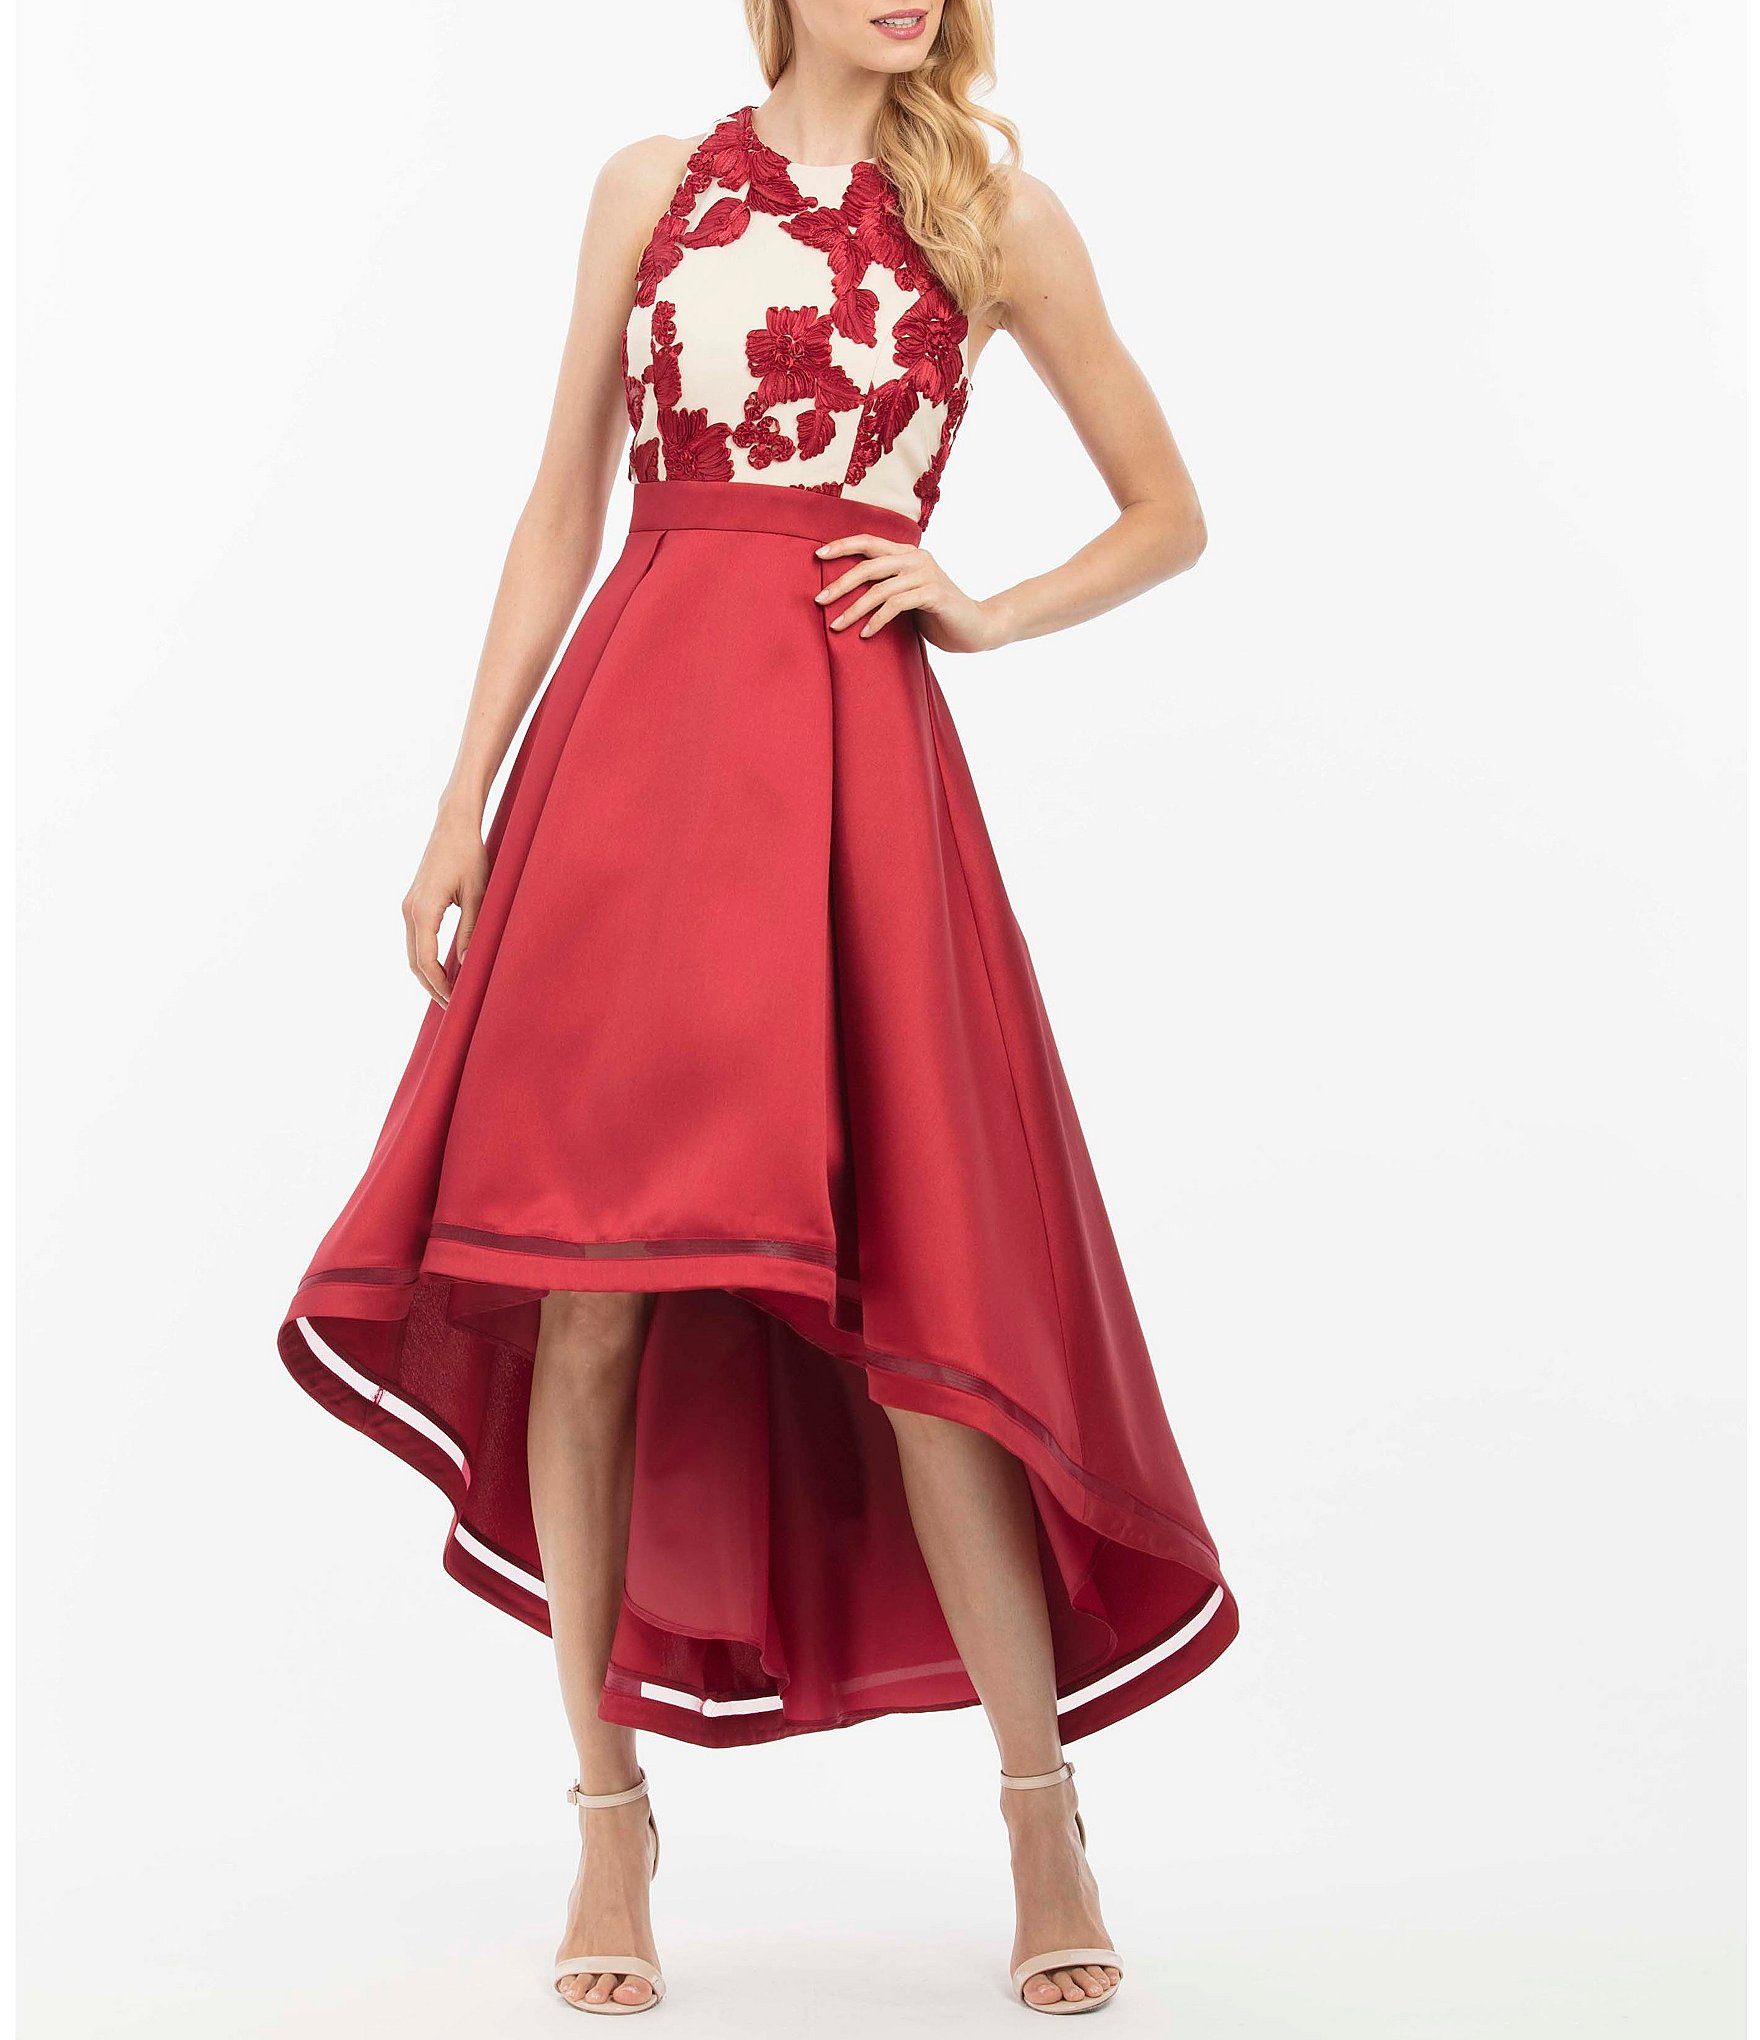 red dresses at dillards - Gowns and Dress Ideas